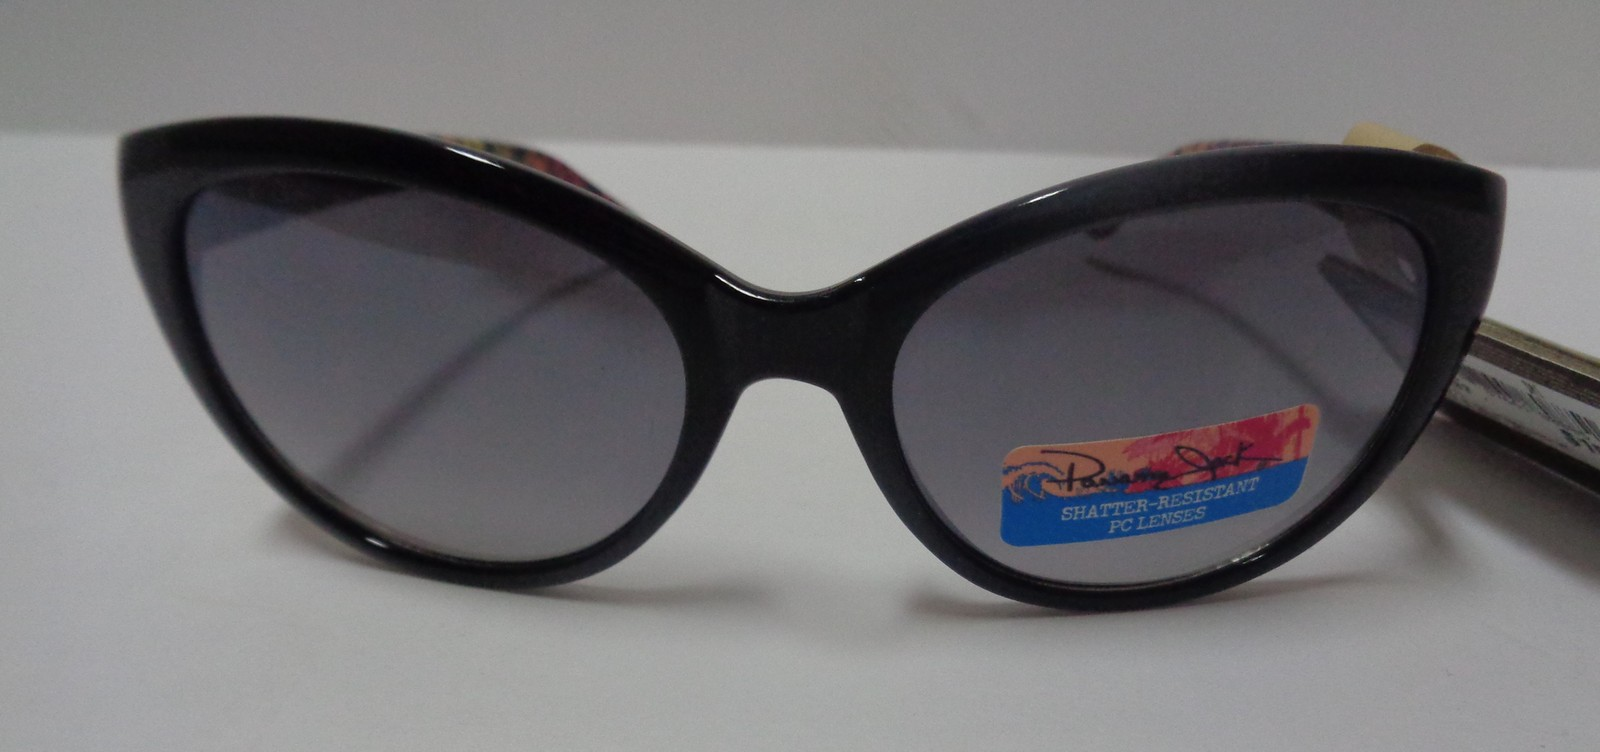 Panama Jack Sunglasses NWT Black Pink Animal Print 100% UVA UVB Protection